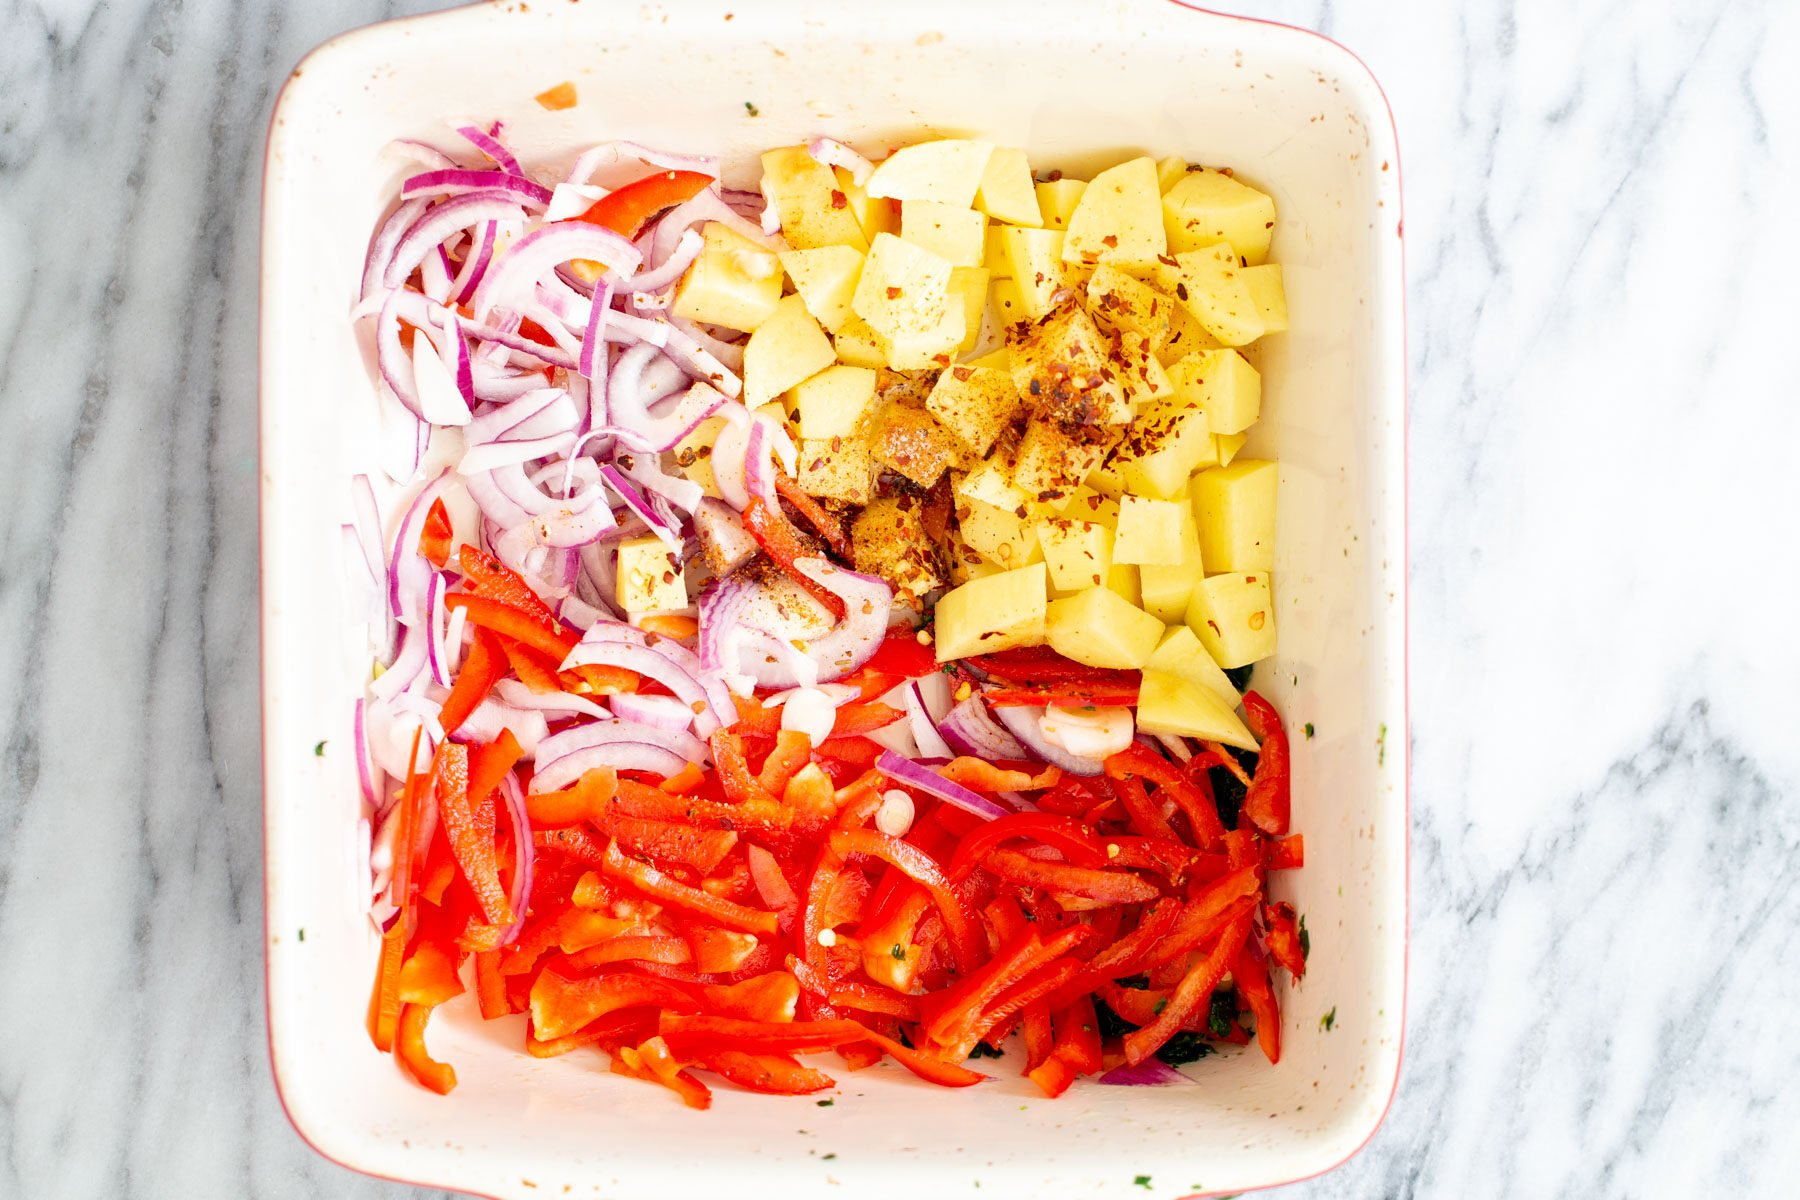 sliced onion and bell pepper and cubed potatoes in a white casserole dish